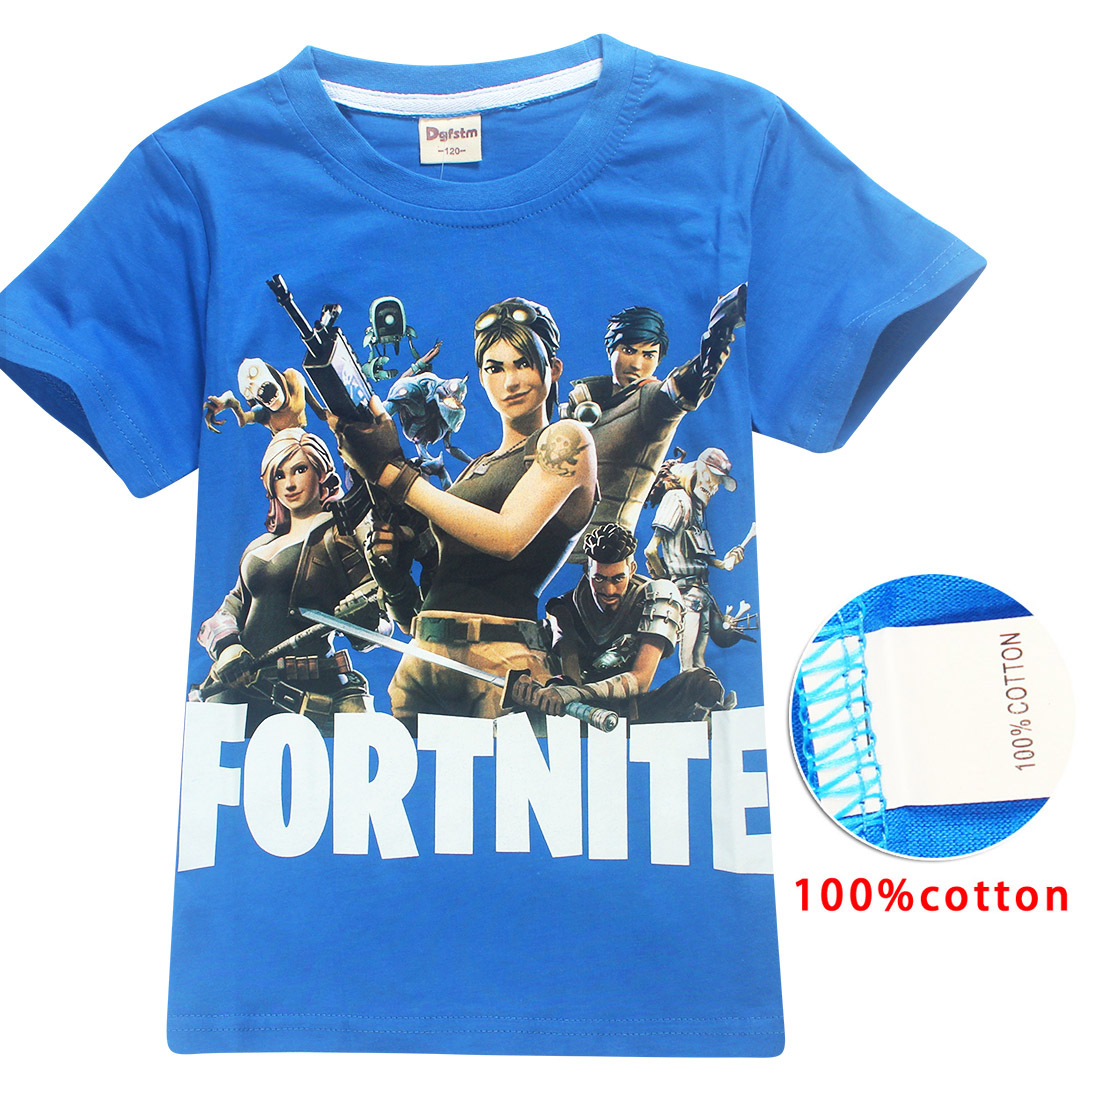 Pure Cotton Summer T Shirts Fortnite Battle Royale Legend Gaming Pattern Tops Baby Girls Boys T-shirt Kids Clothes 12 14 Years